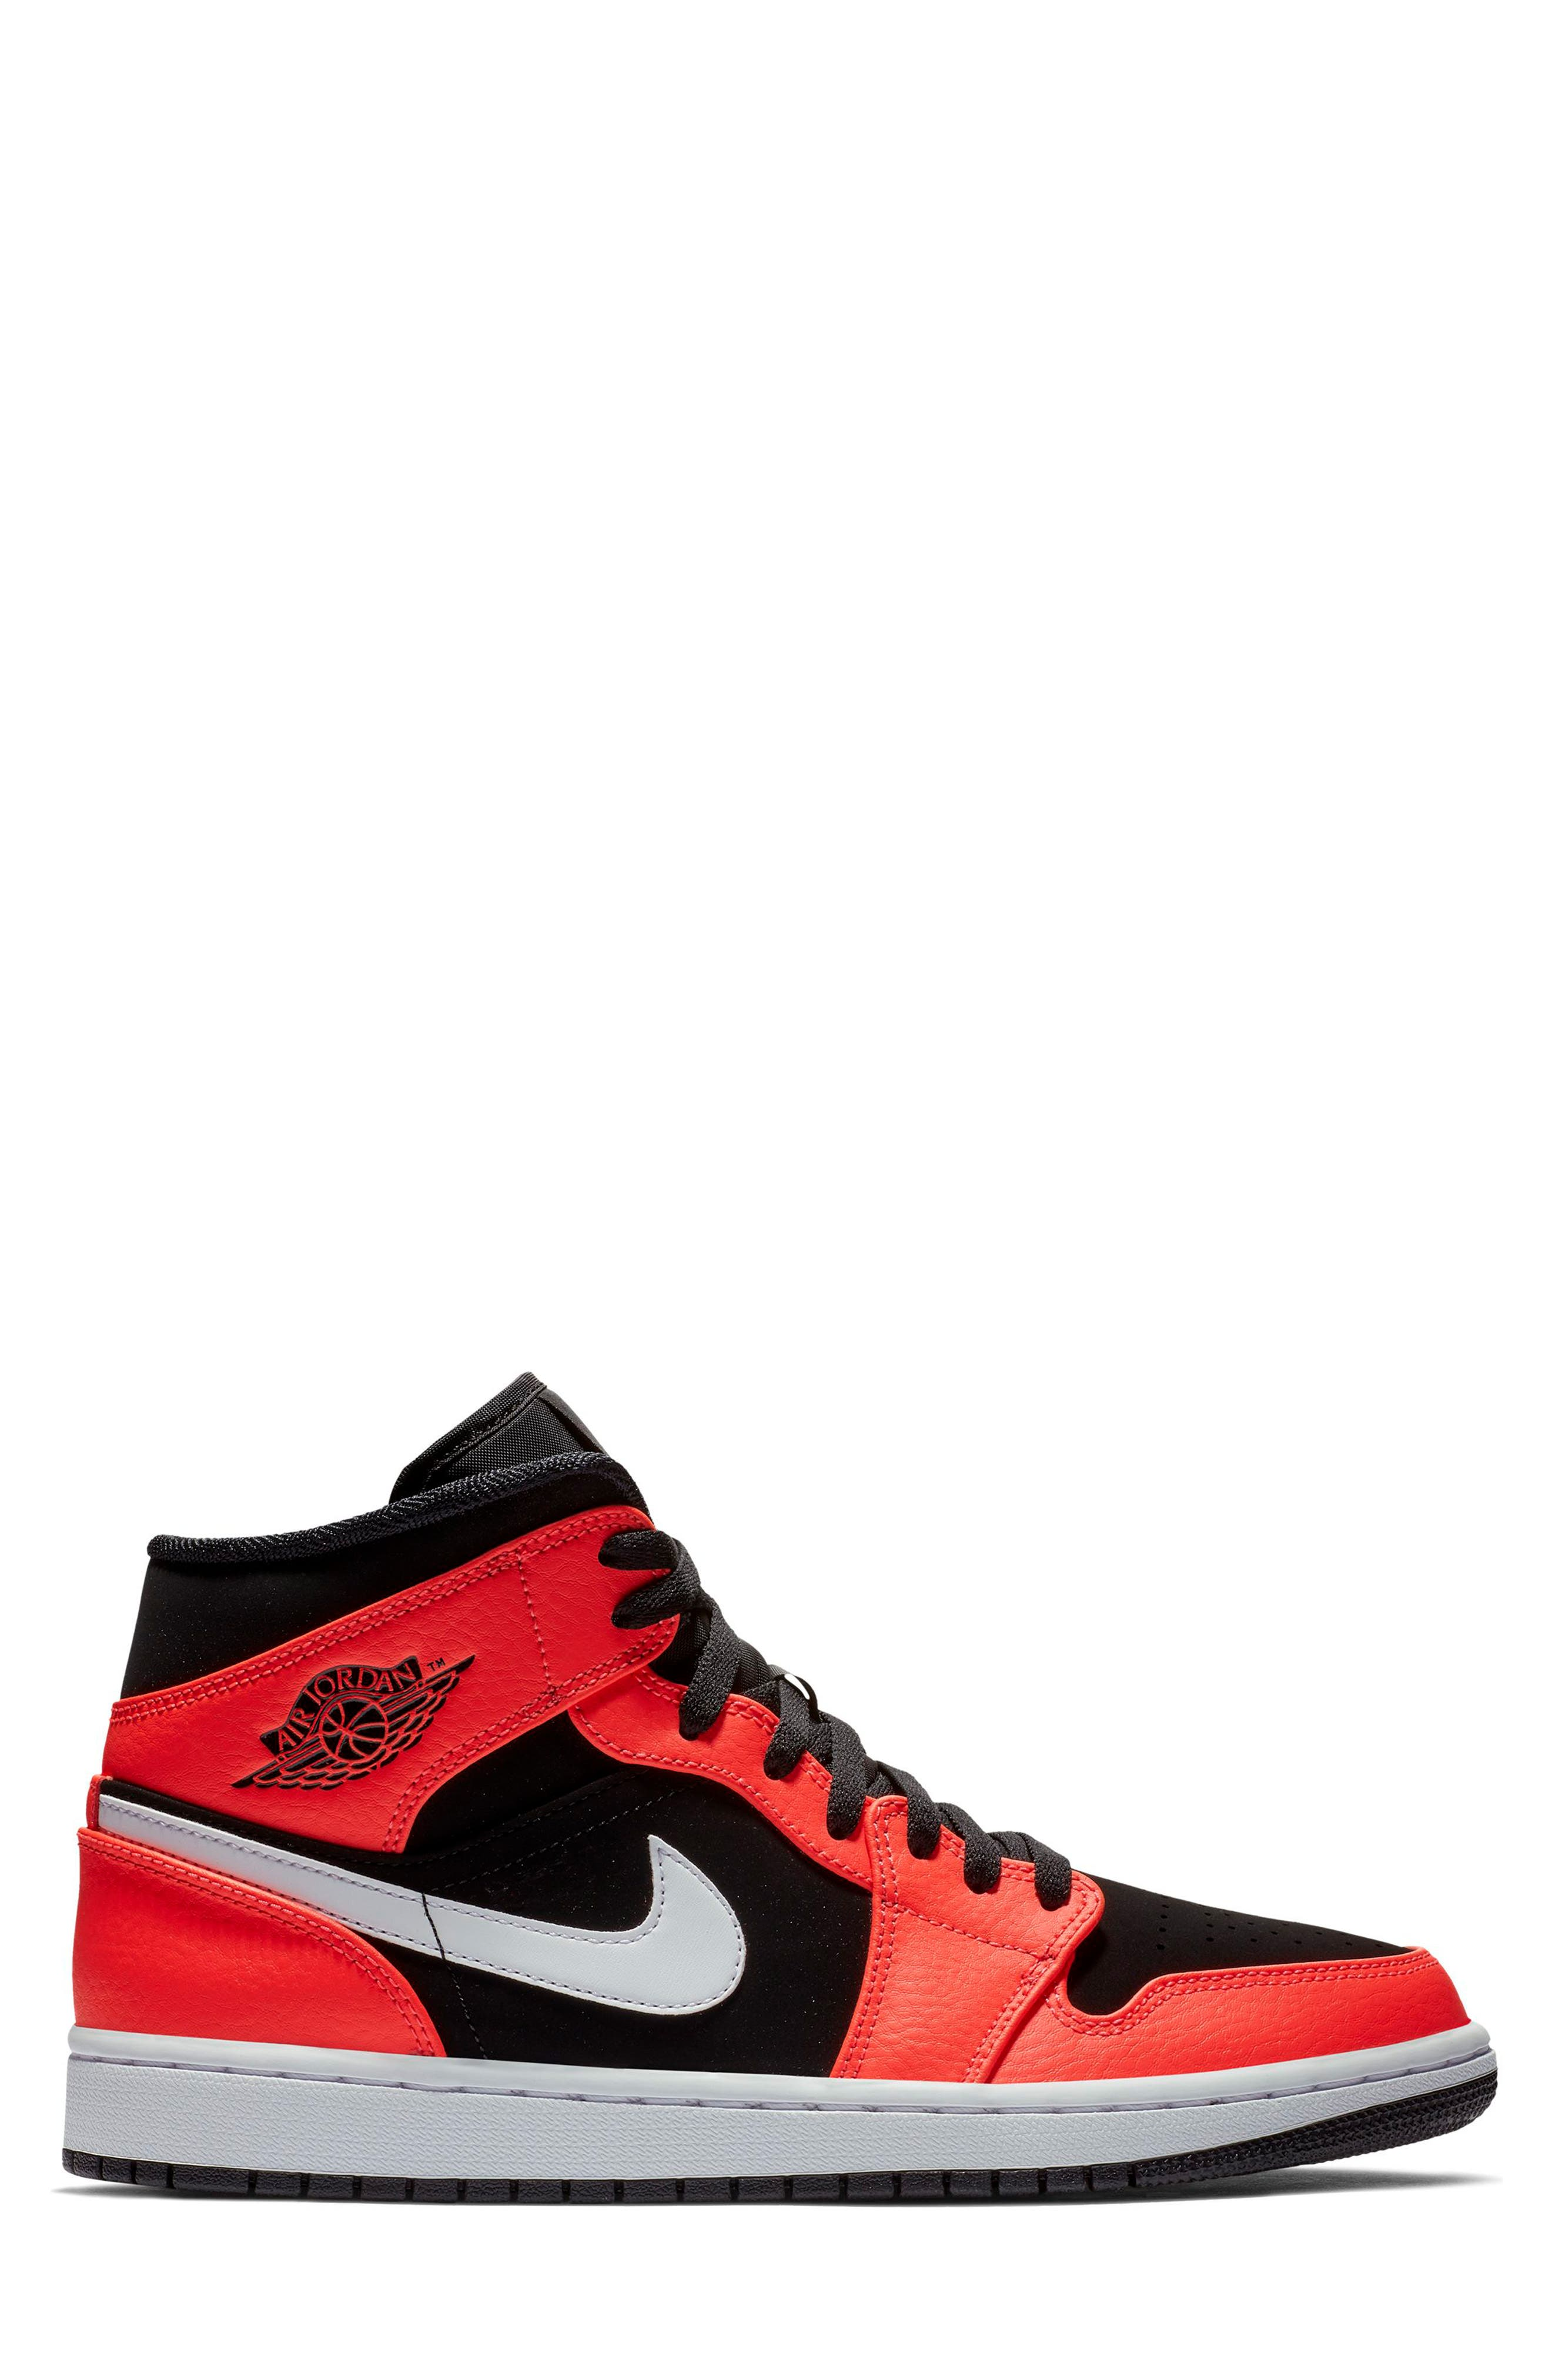 separation shoes 124b3 35f19 Men s Red Nike Shoes, Clothing   Accessories   Nordstrom